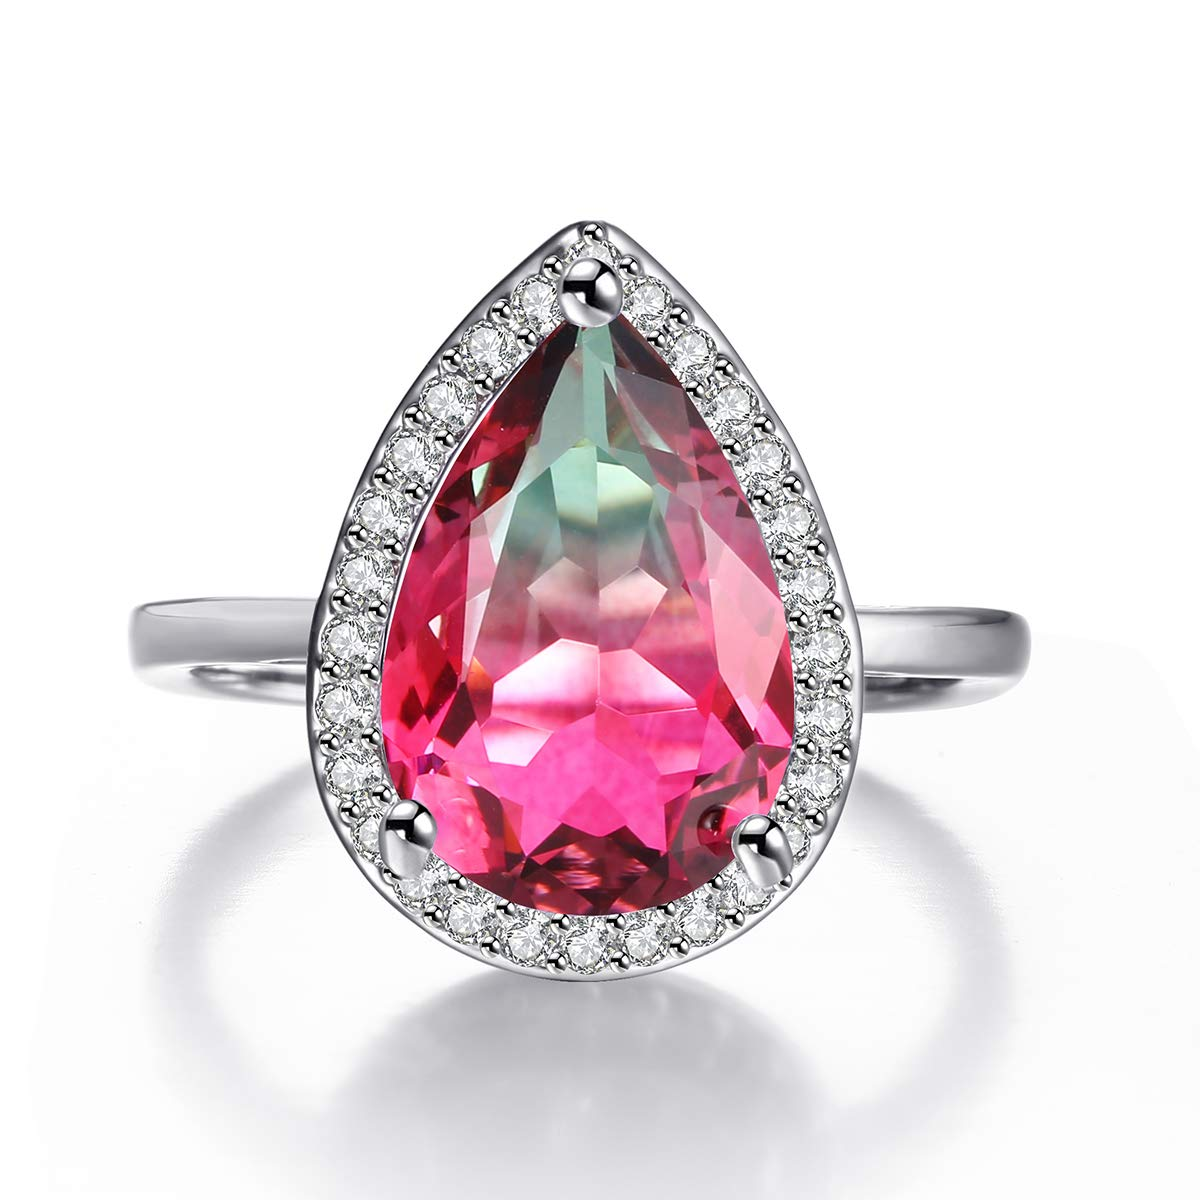 Teardrop Rings for Women Pear Cut Simulated Citrine Ametrine Watermelon Crystal Micro Cubic Zirconia Halo Style Rhodium Plated Ring Size 5-10 Shengtai ST594Z-QZ